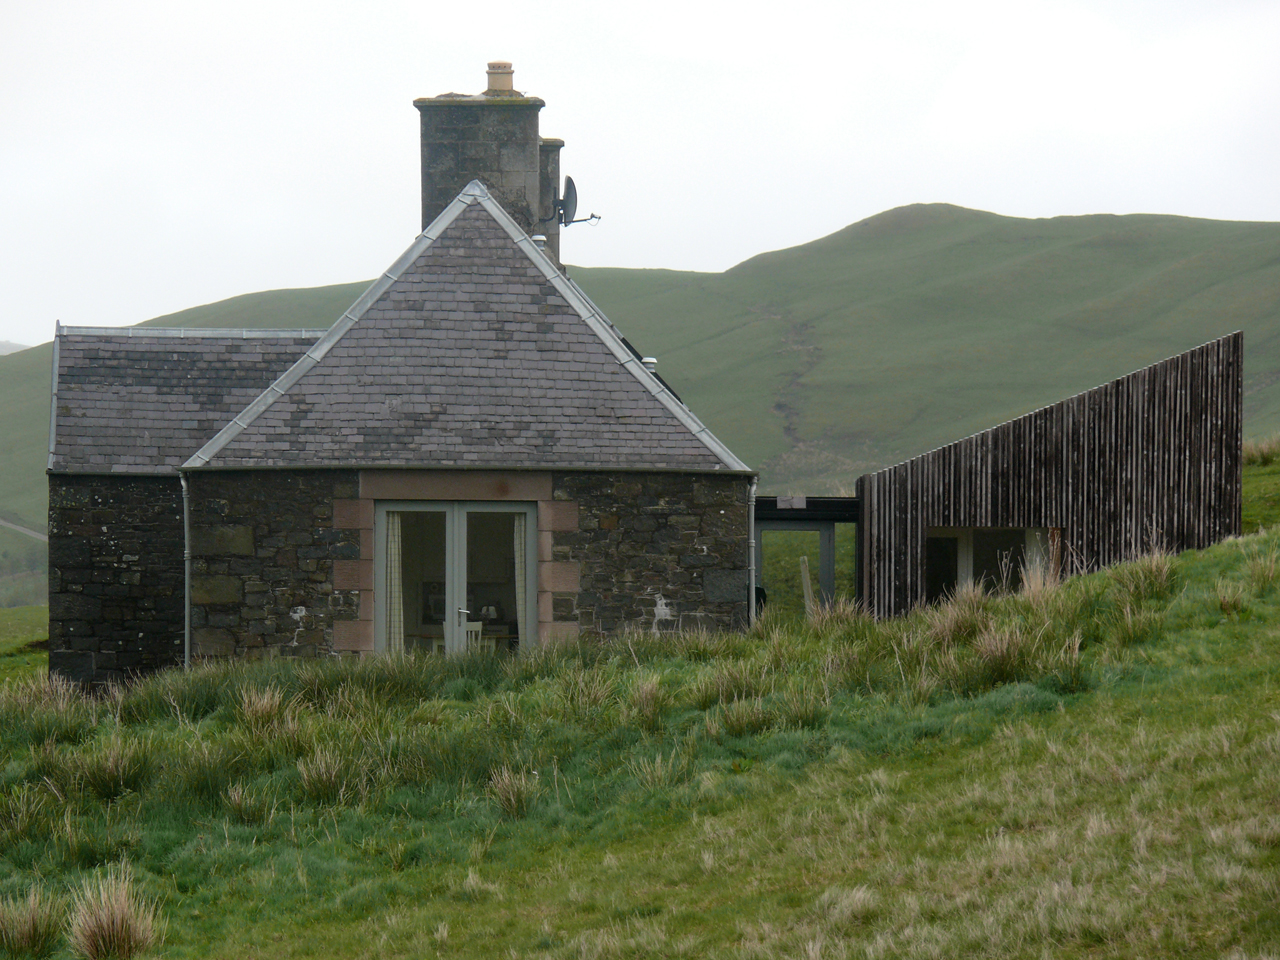 Ackling Cook Bothy / Reiach and Hall Architects, Courtesy of  reiach and hall architects